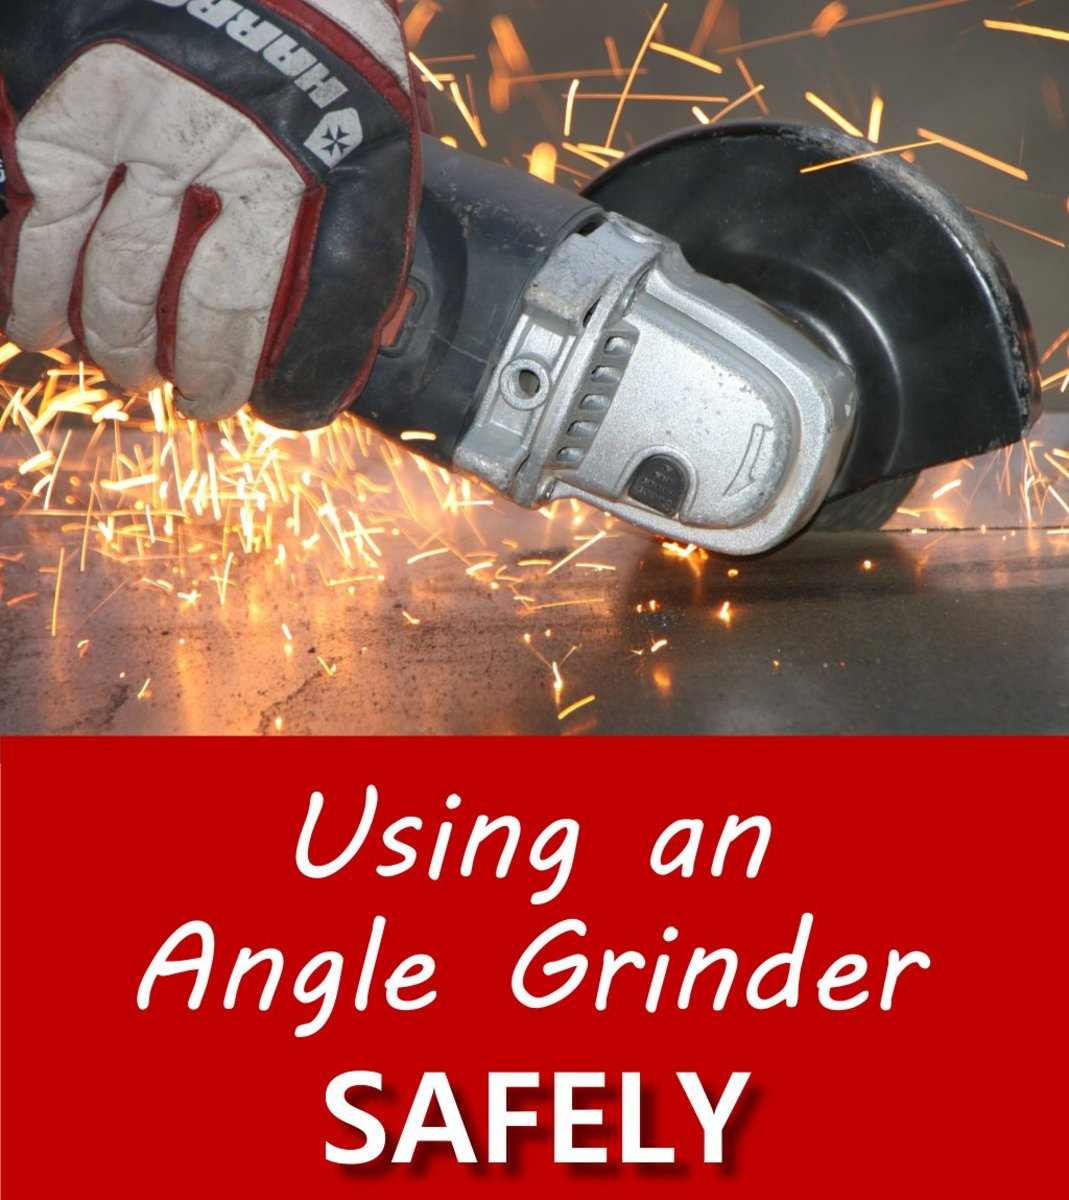 Using an Angle Grinder Safely for Cutting and Grinding